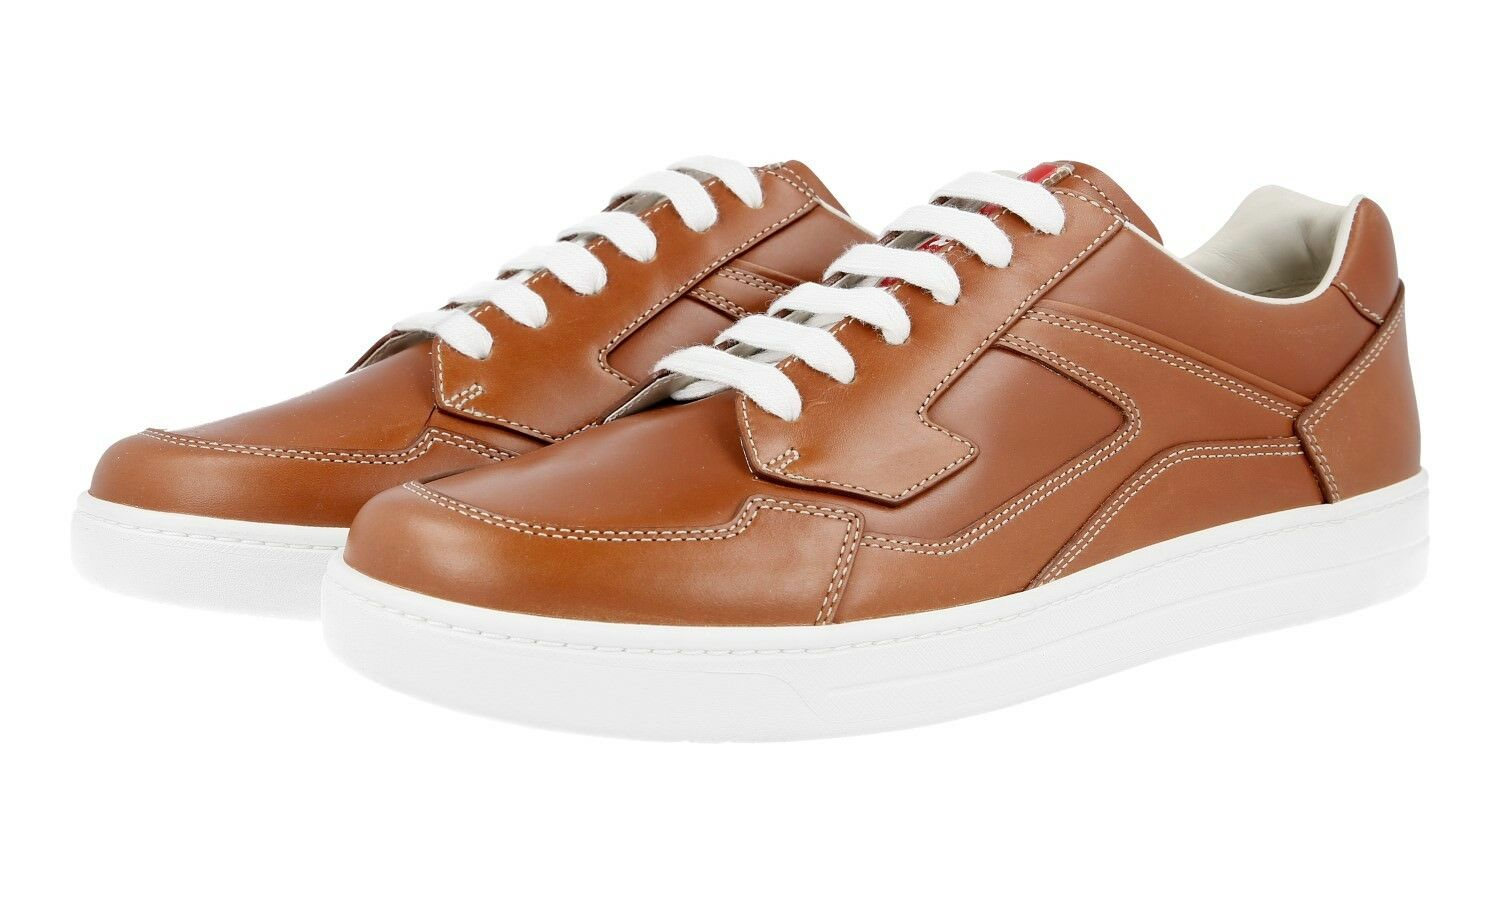 LUXUS PRADA SNEAKER SCHUHE 4E2797 brown NEU NEW 8 42 42,5